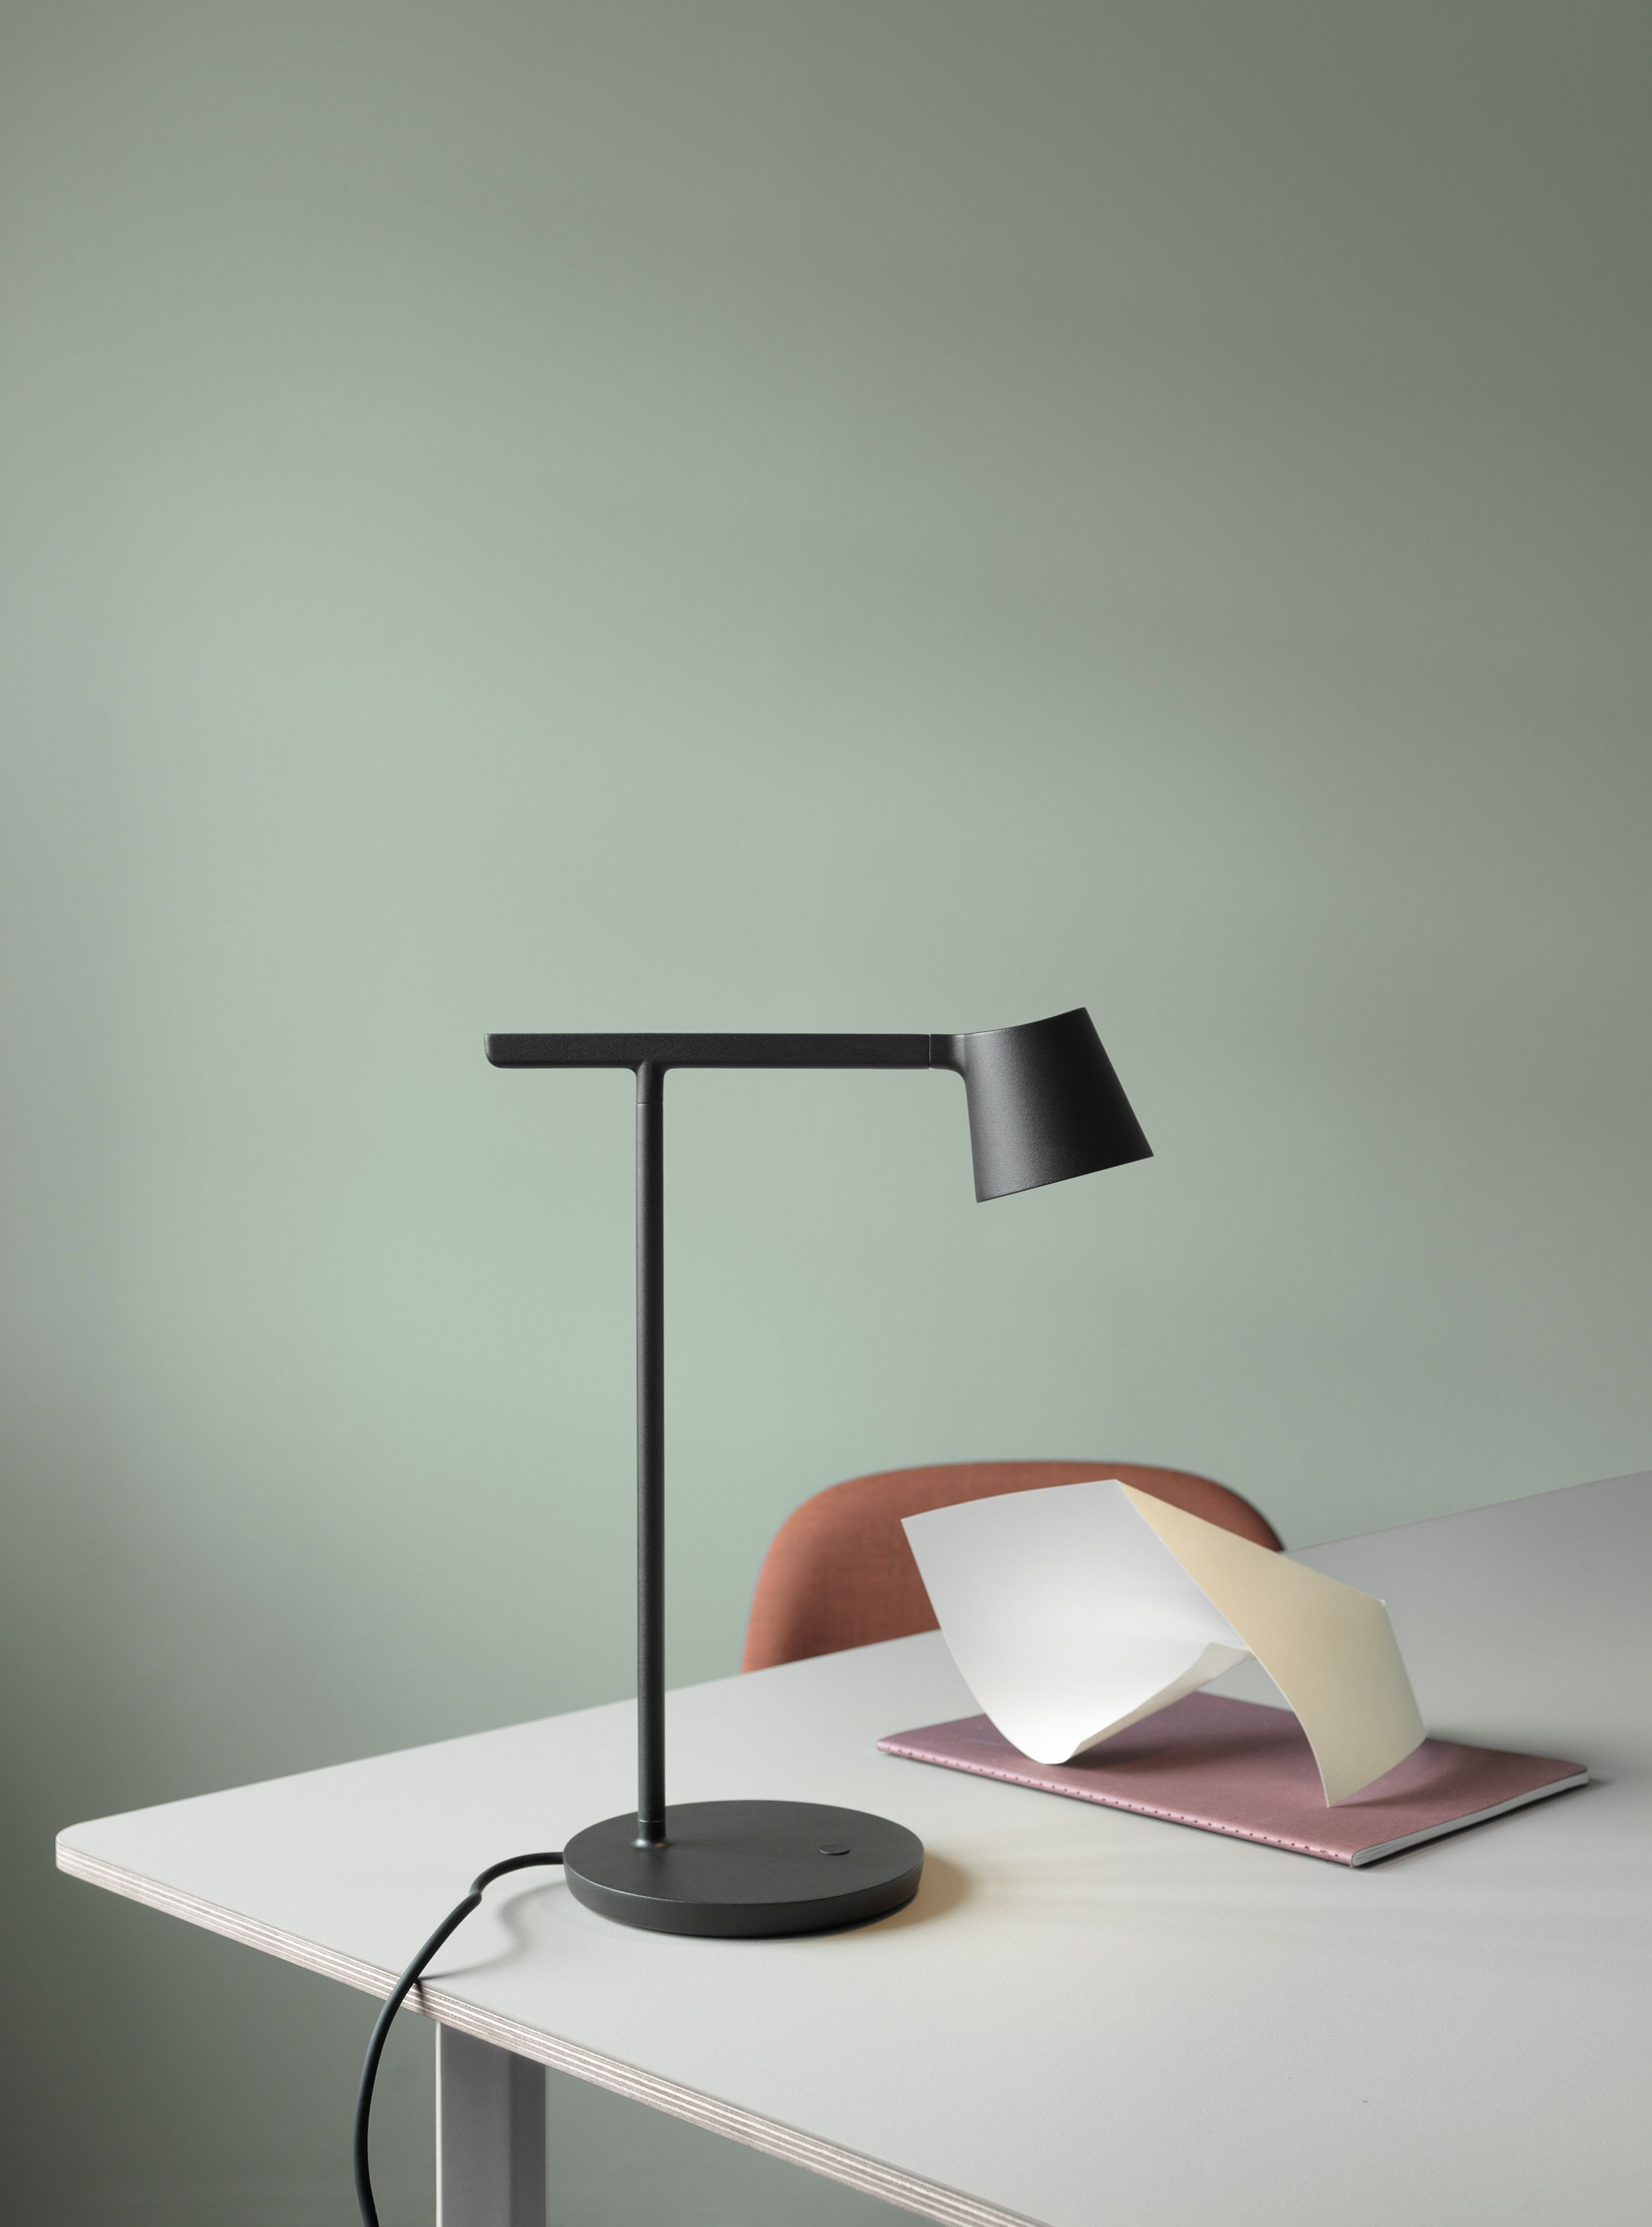 A simple, functional design with a Scandinavian twist: The